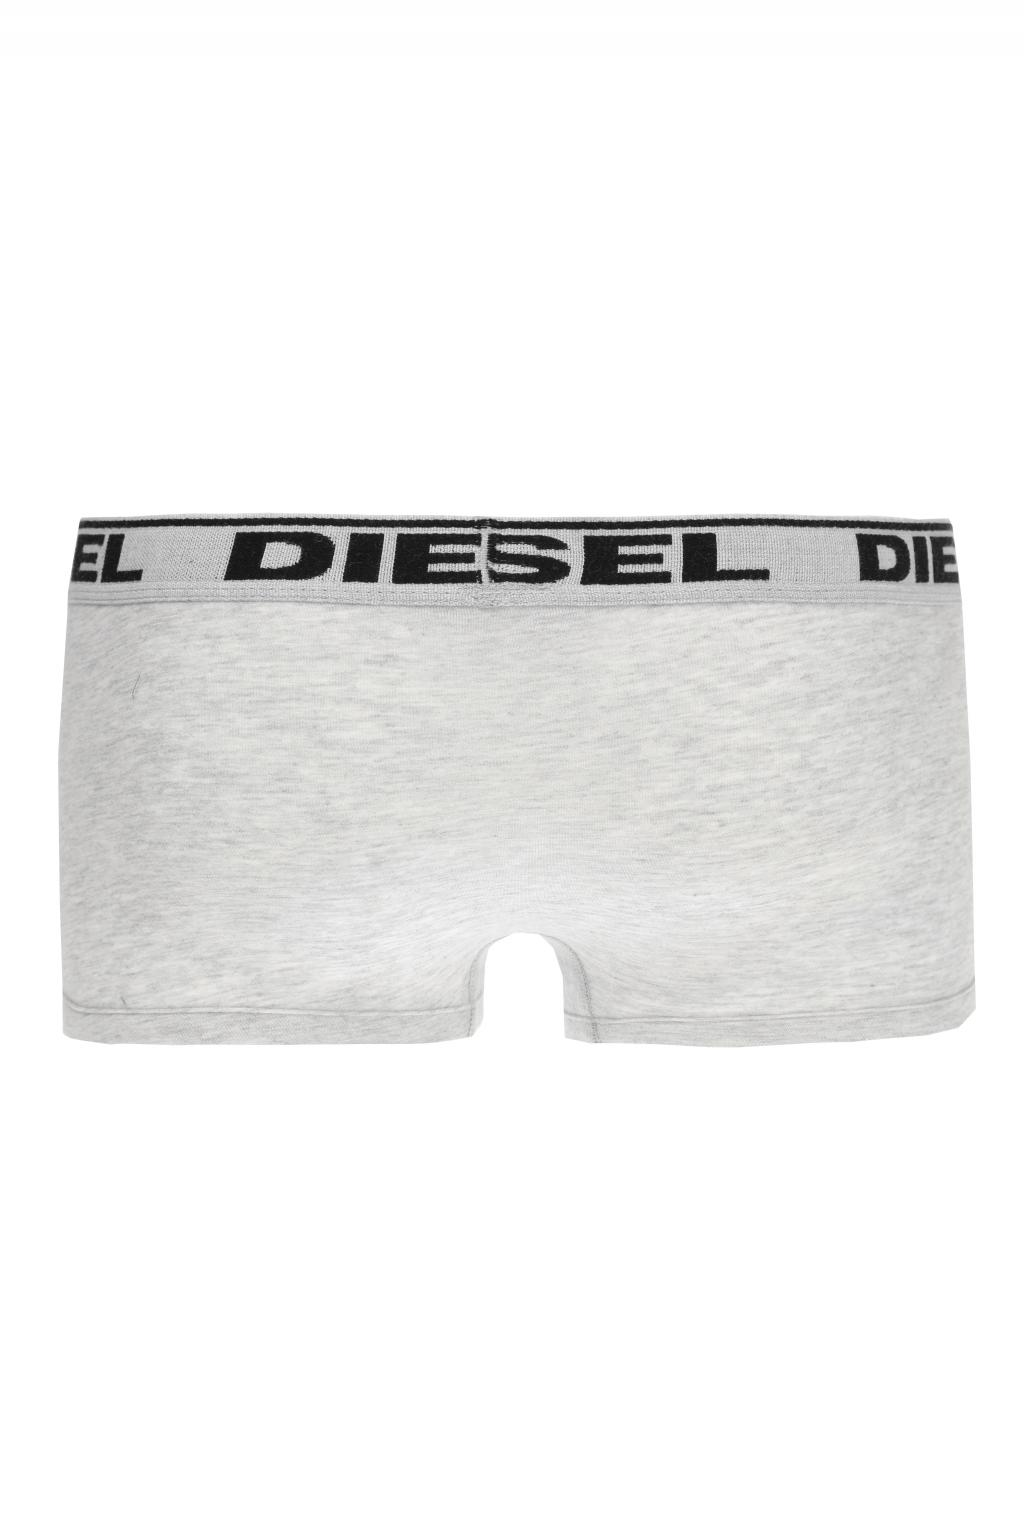 Diesel Kids Boxers two-pack